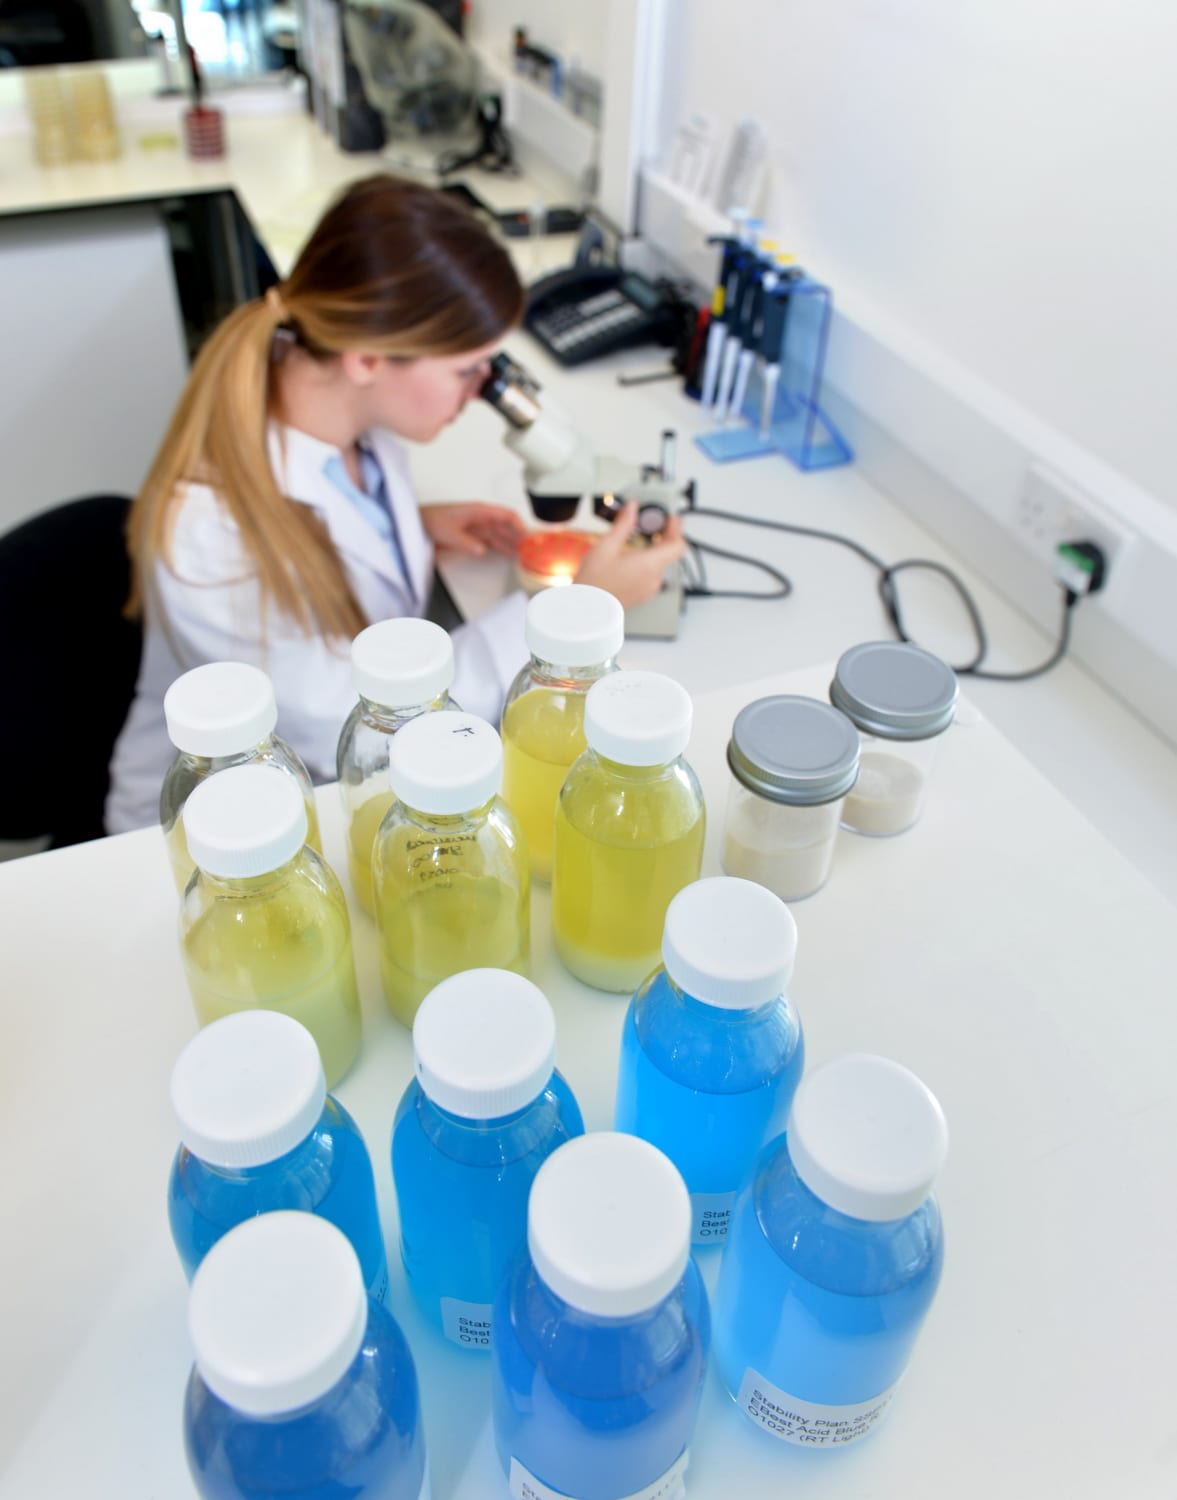 EU Biocidal Product Regulations set to have major impact on cleaning industries